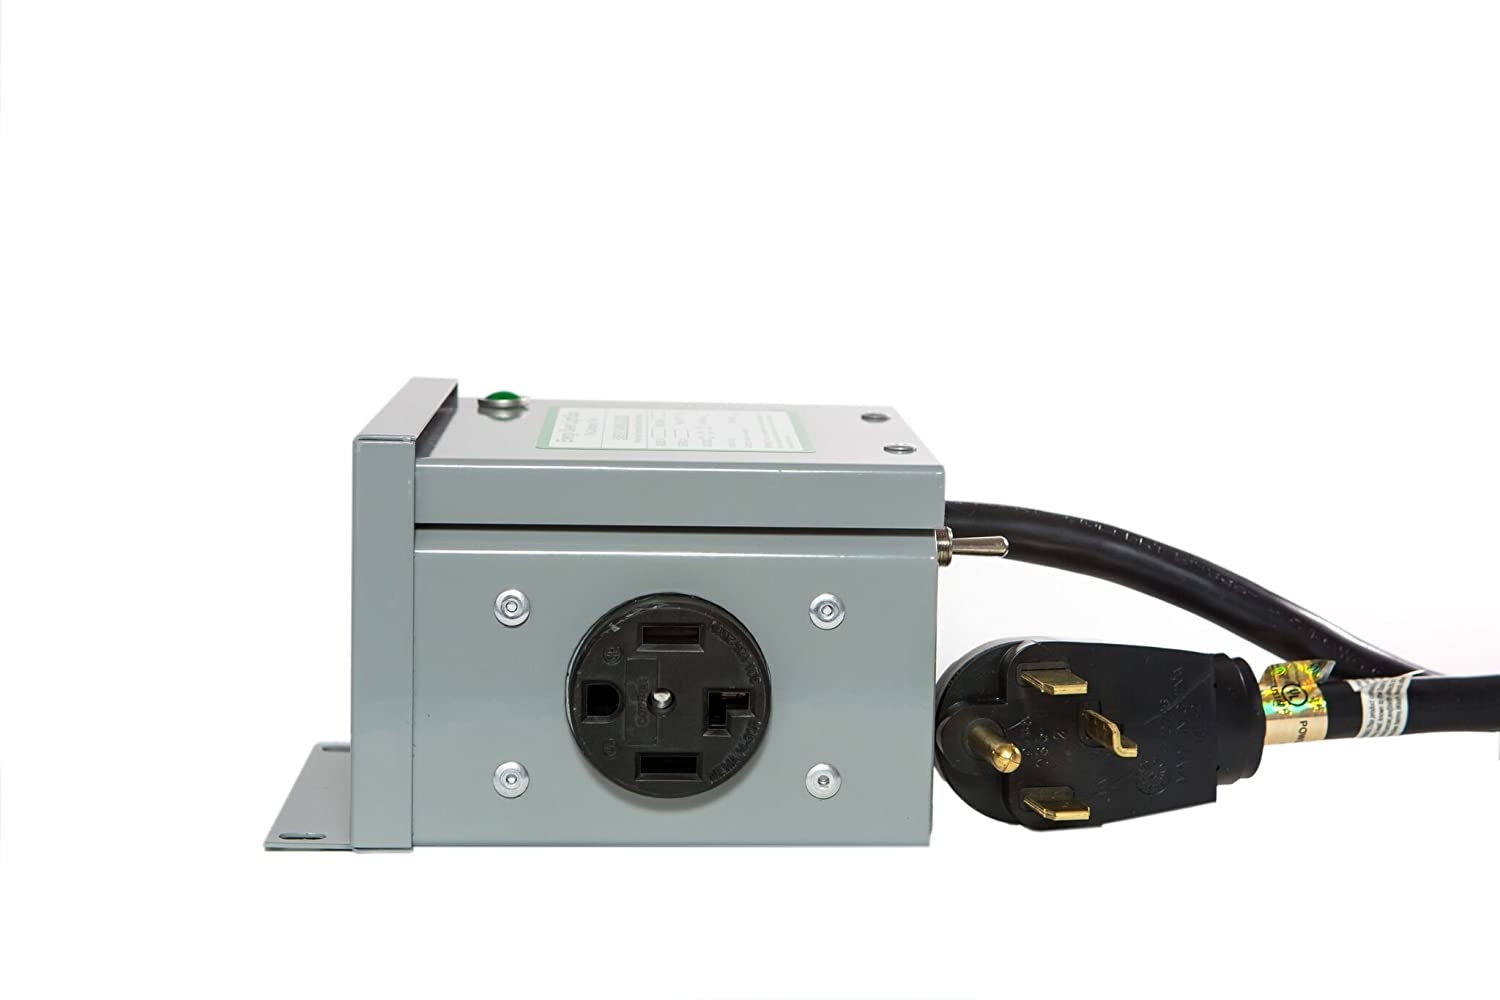 Dryer 4 Prong Residential Surge Protector Energy Saver Plug Wiring Maytag Receptacle Green Box Unit Car Electronics